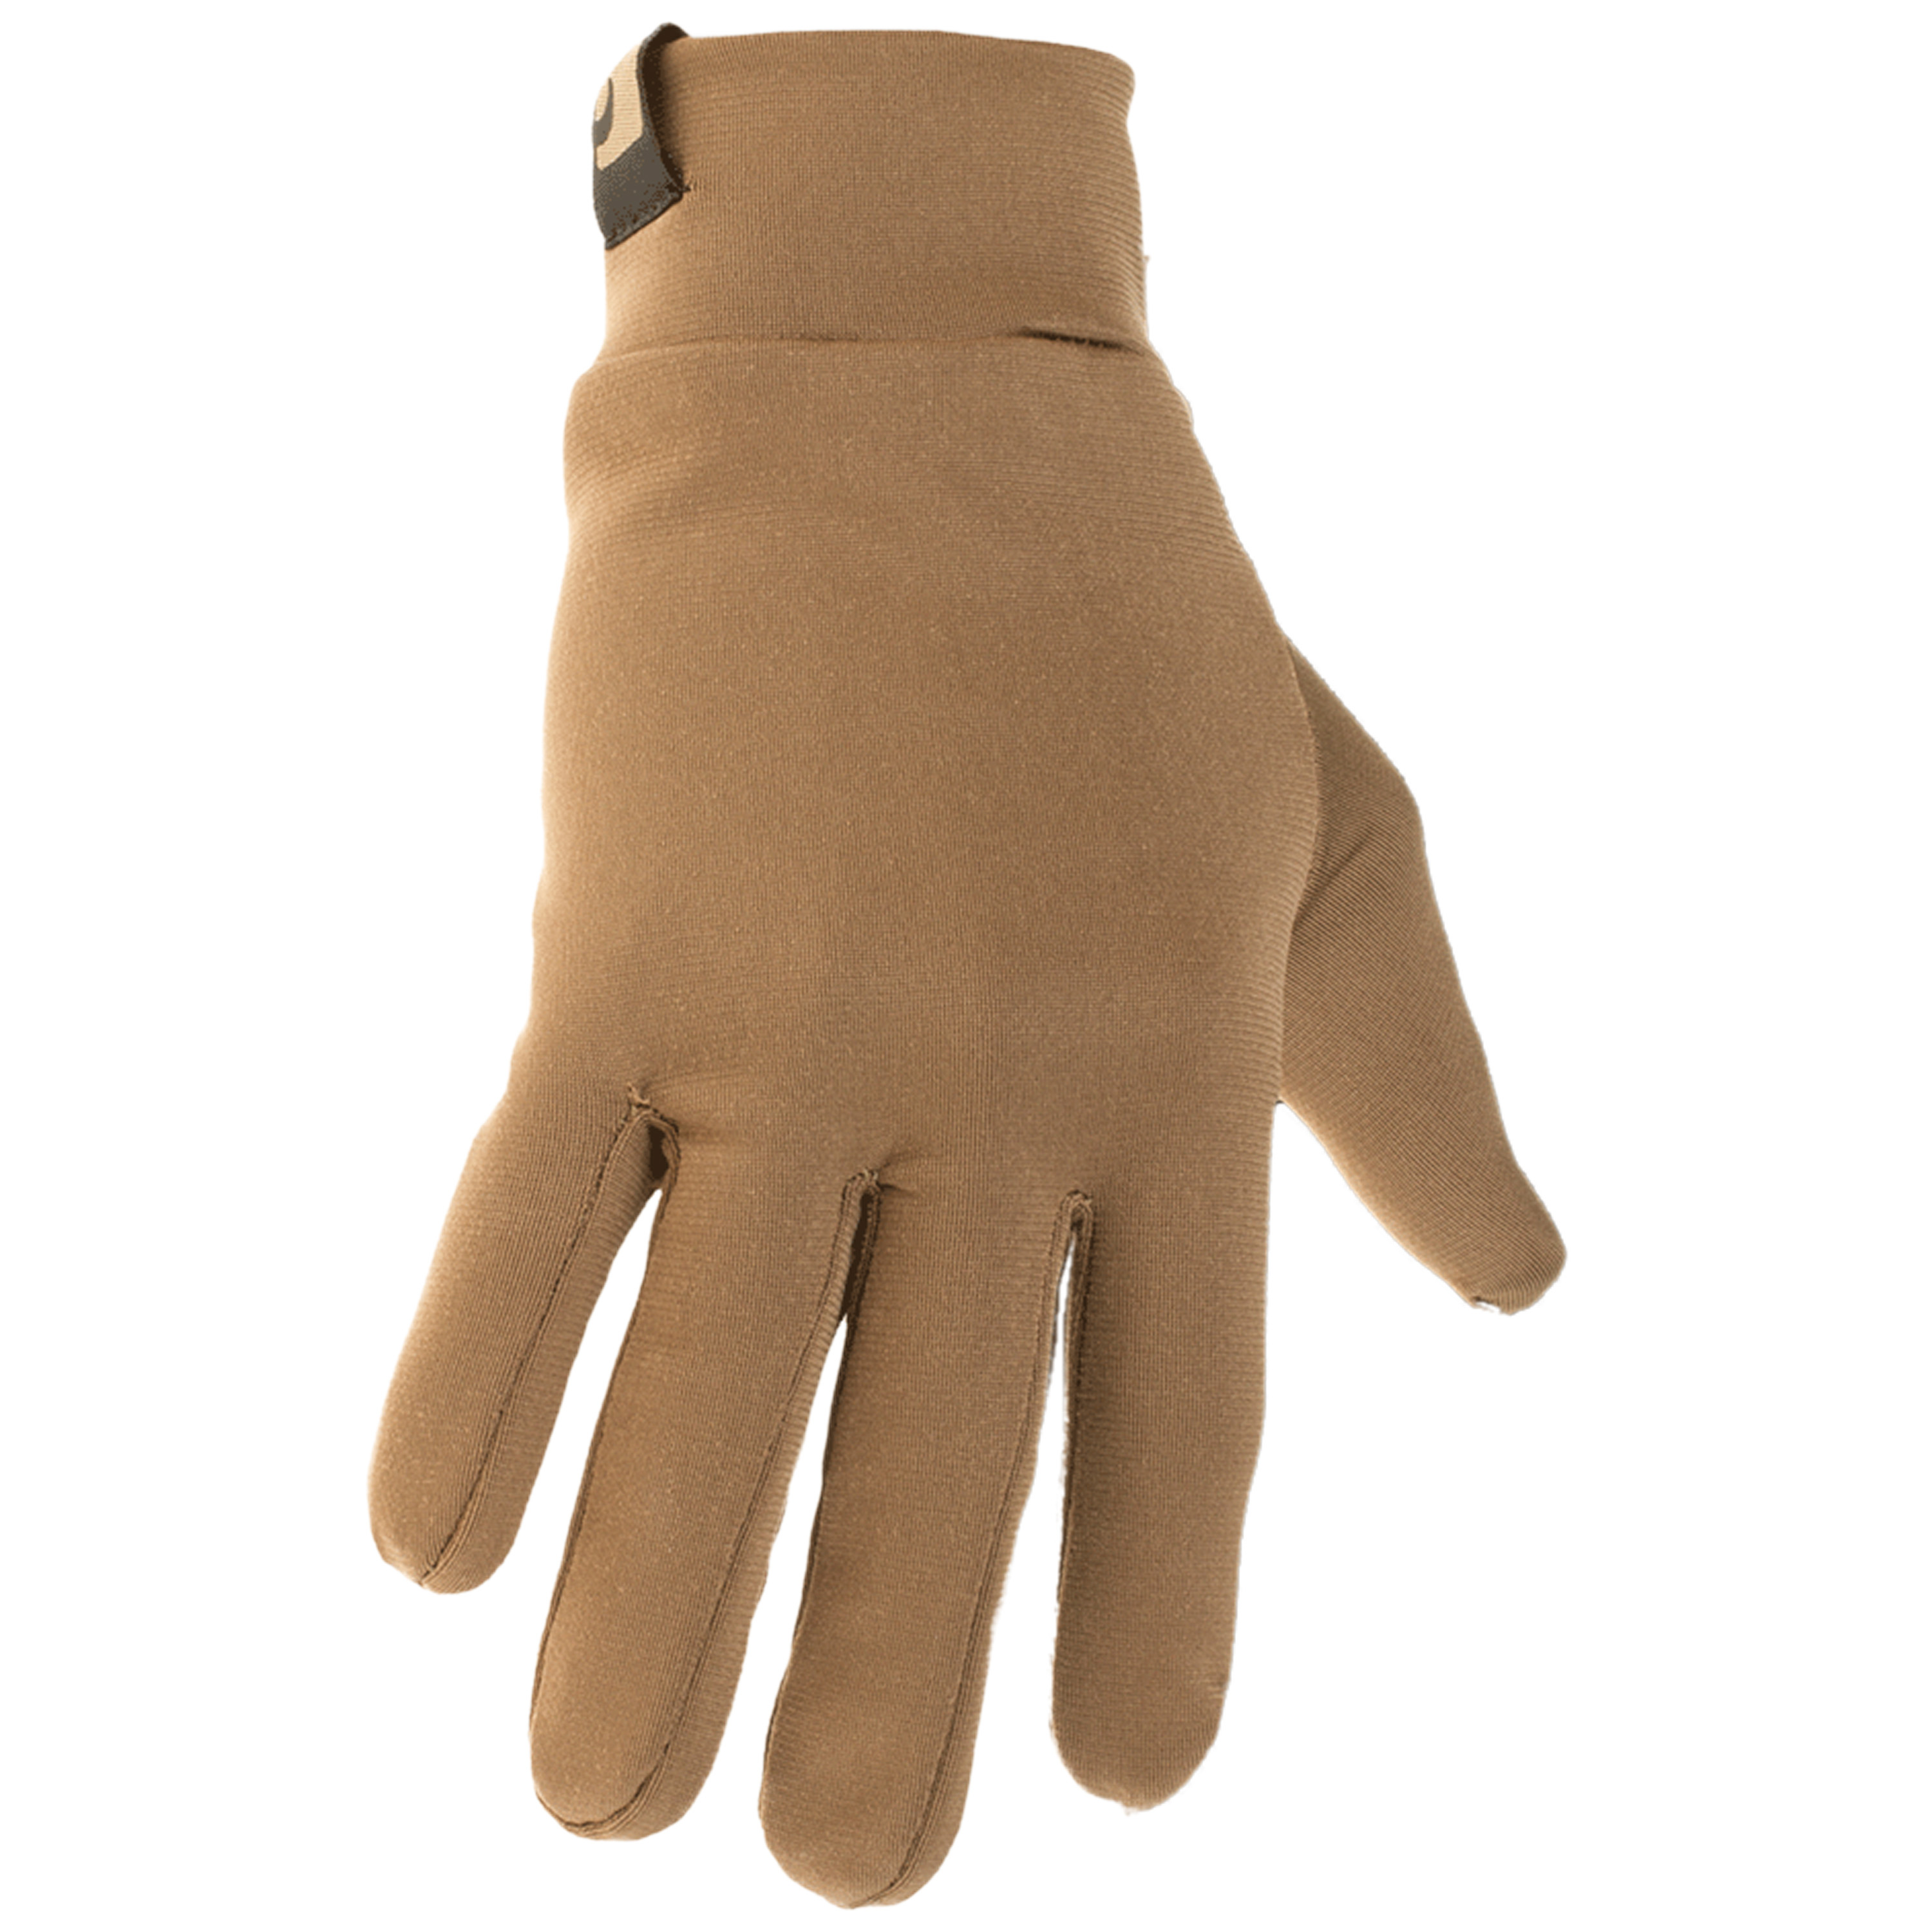 ClawGear Handschuhe Liner Gloves coyote